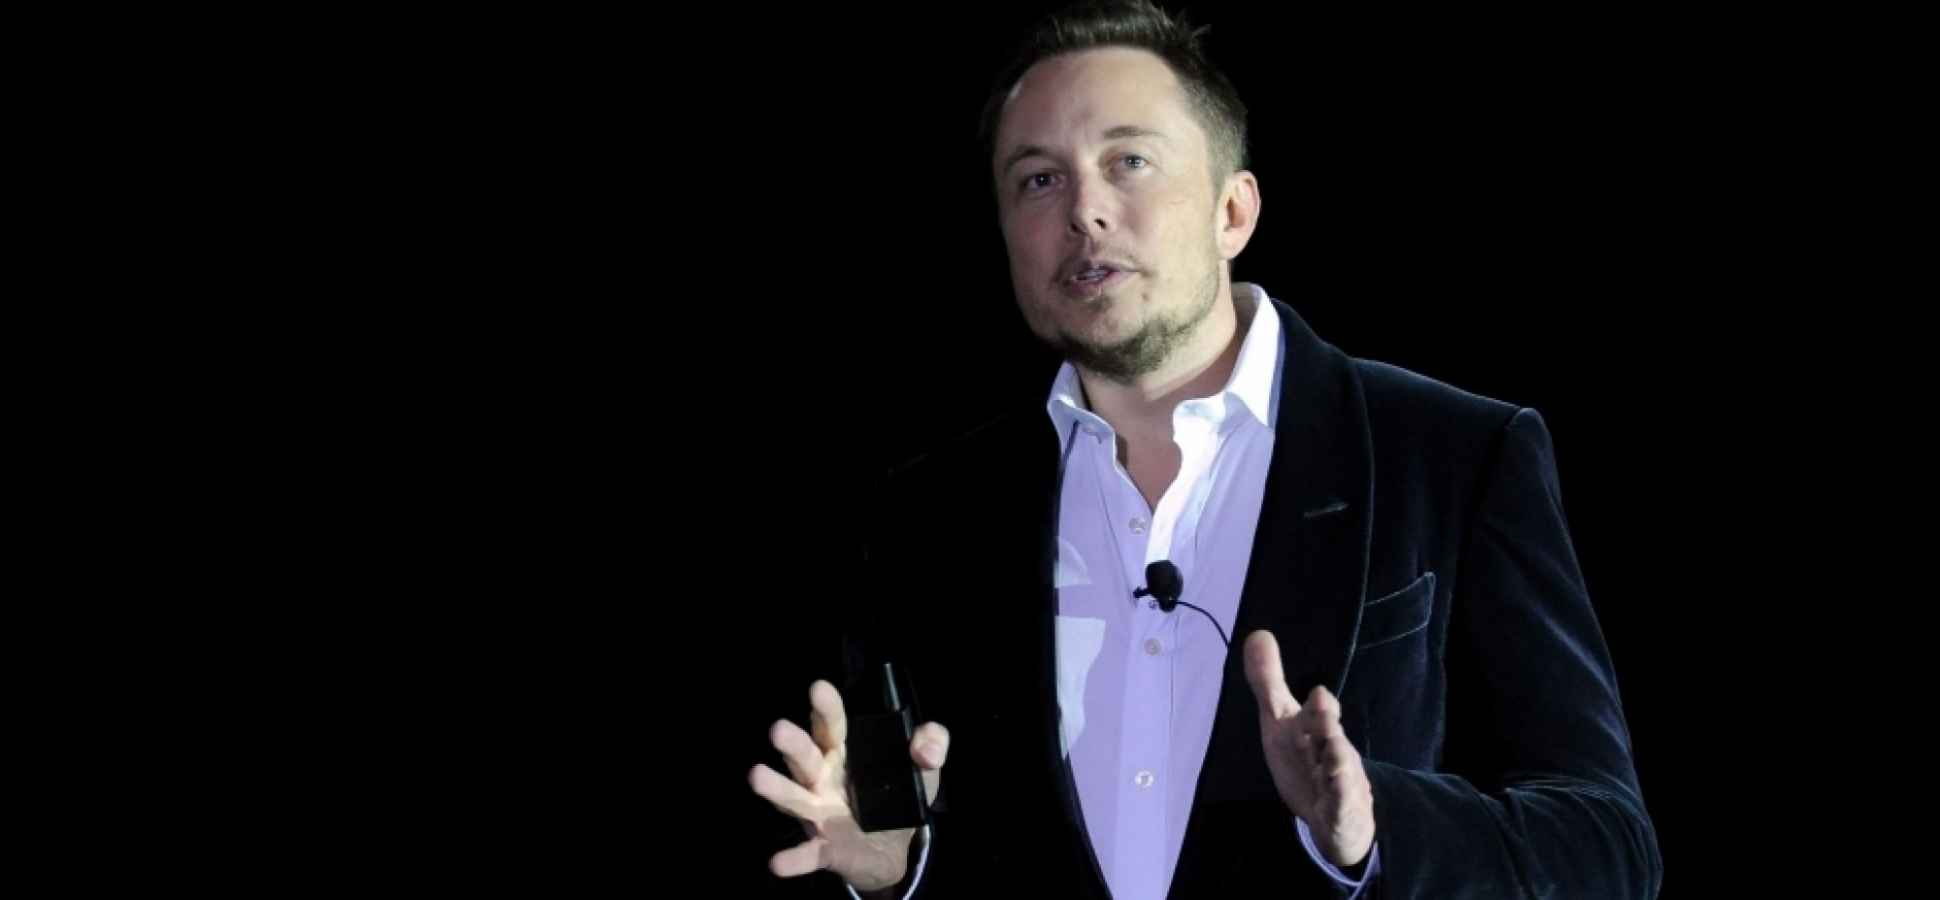 5 Reasons Elon Musk Owns the Stage When He Speaks